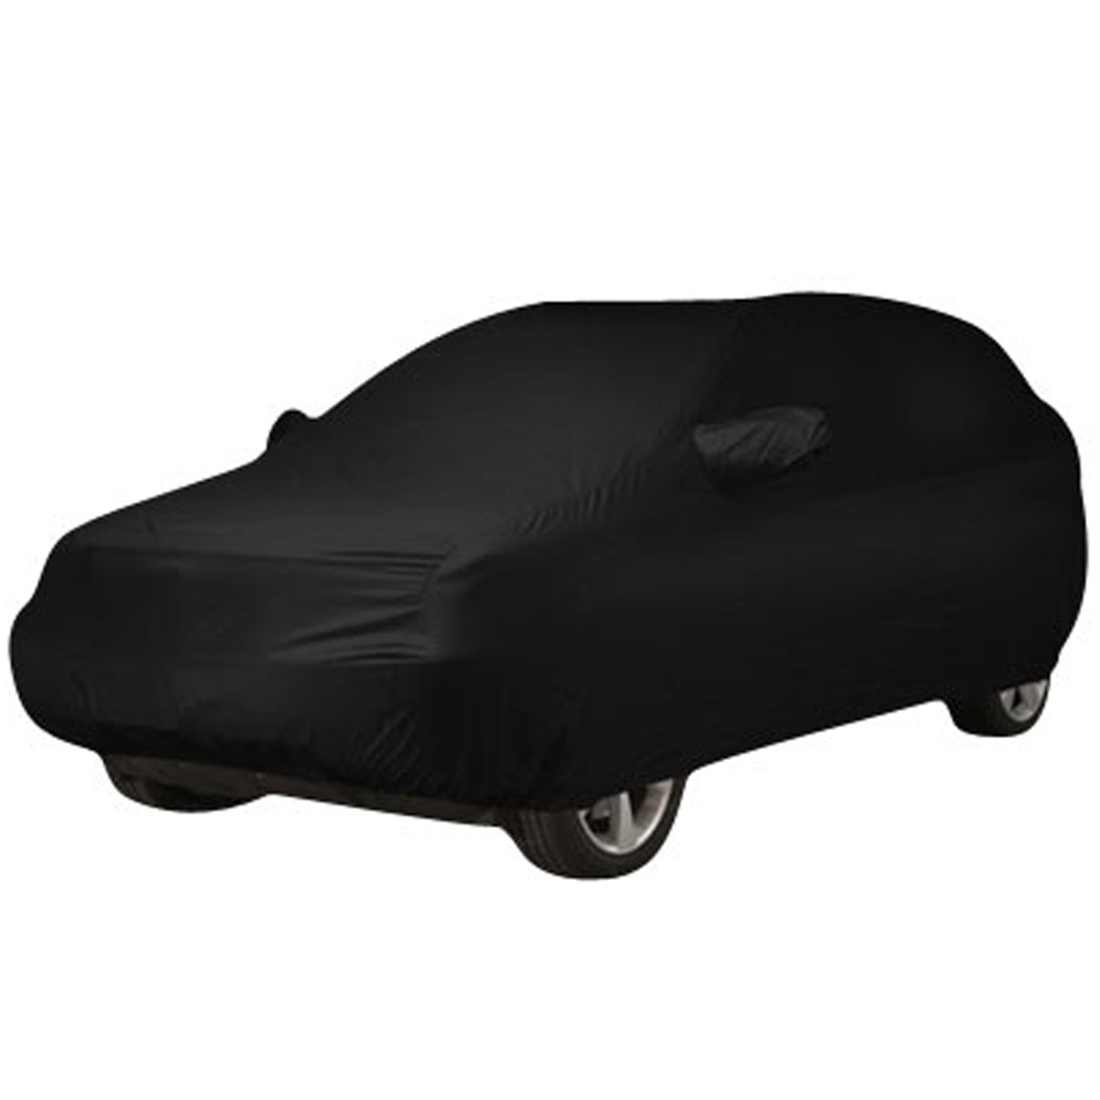 Black Breathable Waterproof Car Cover w Mirror Pocket YXL 5.25